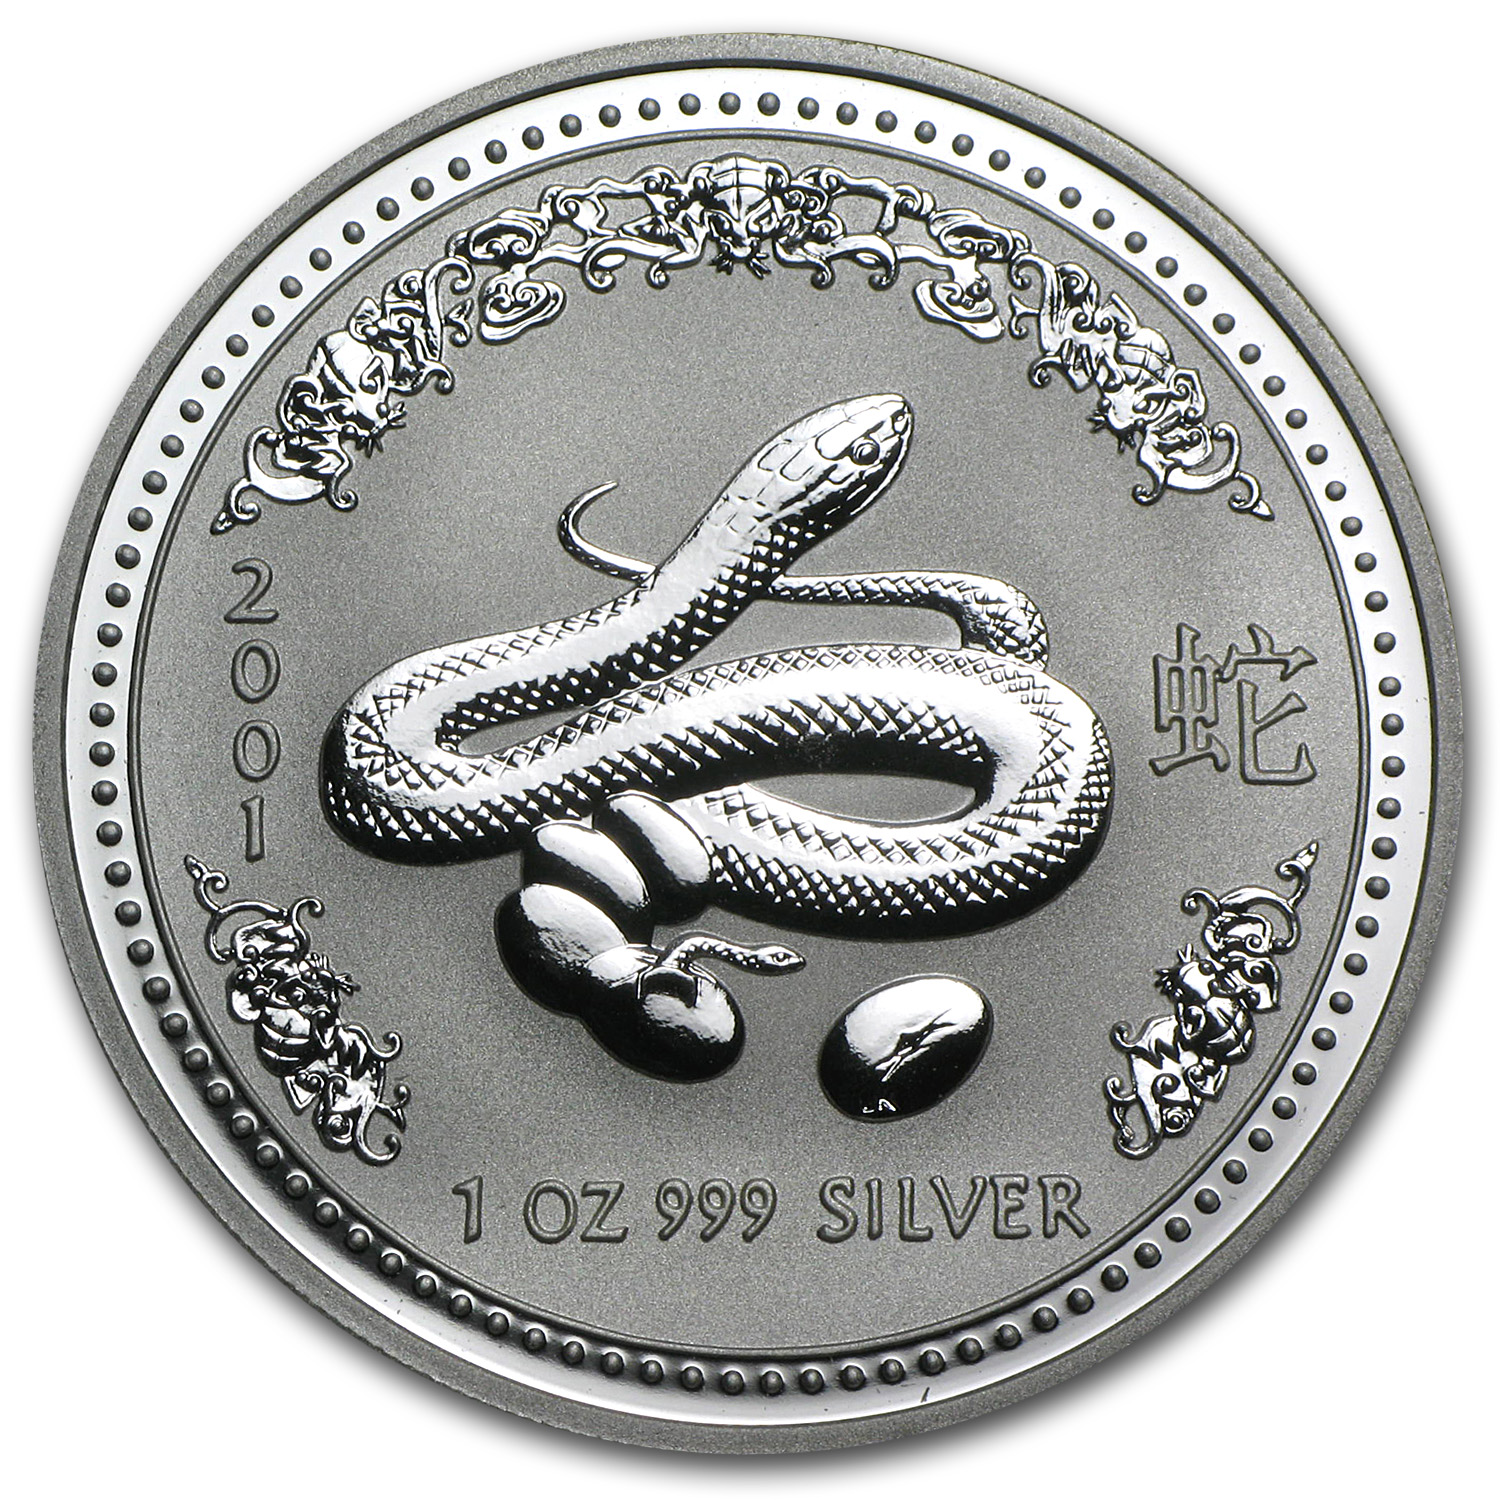 2001 Australia 1 oz Silver Year of the Snake BU